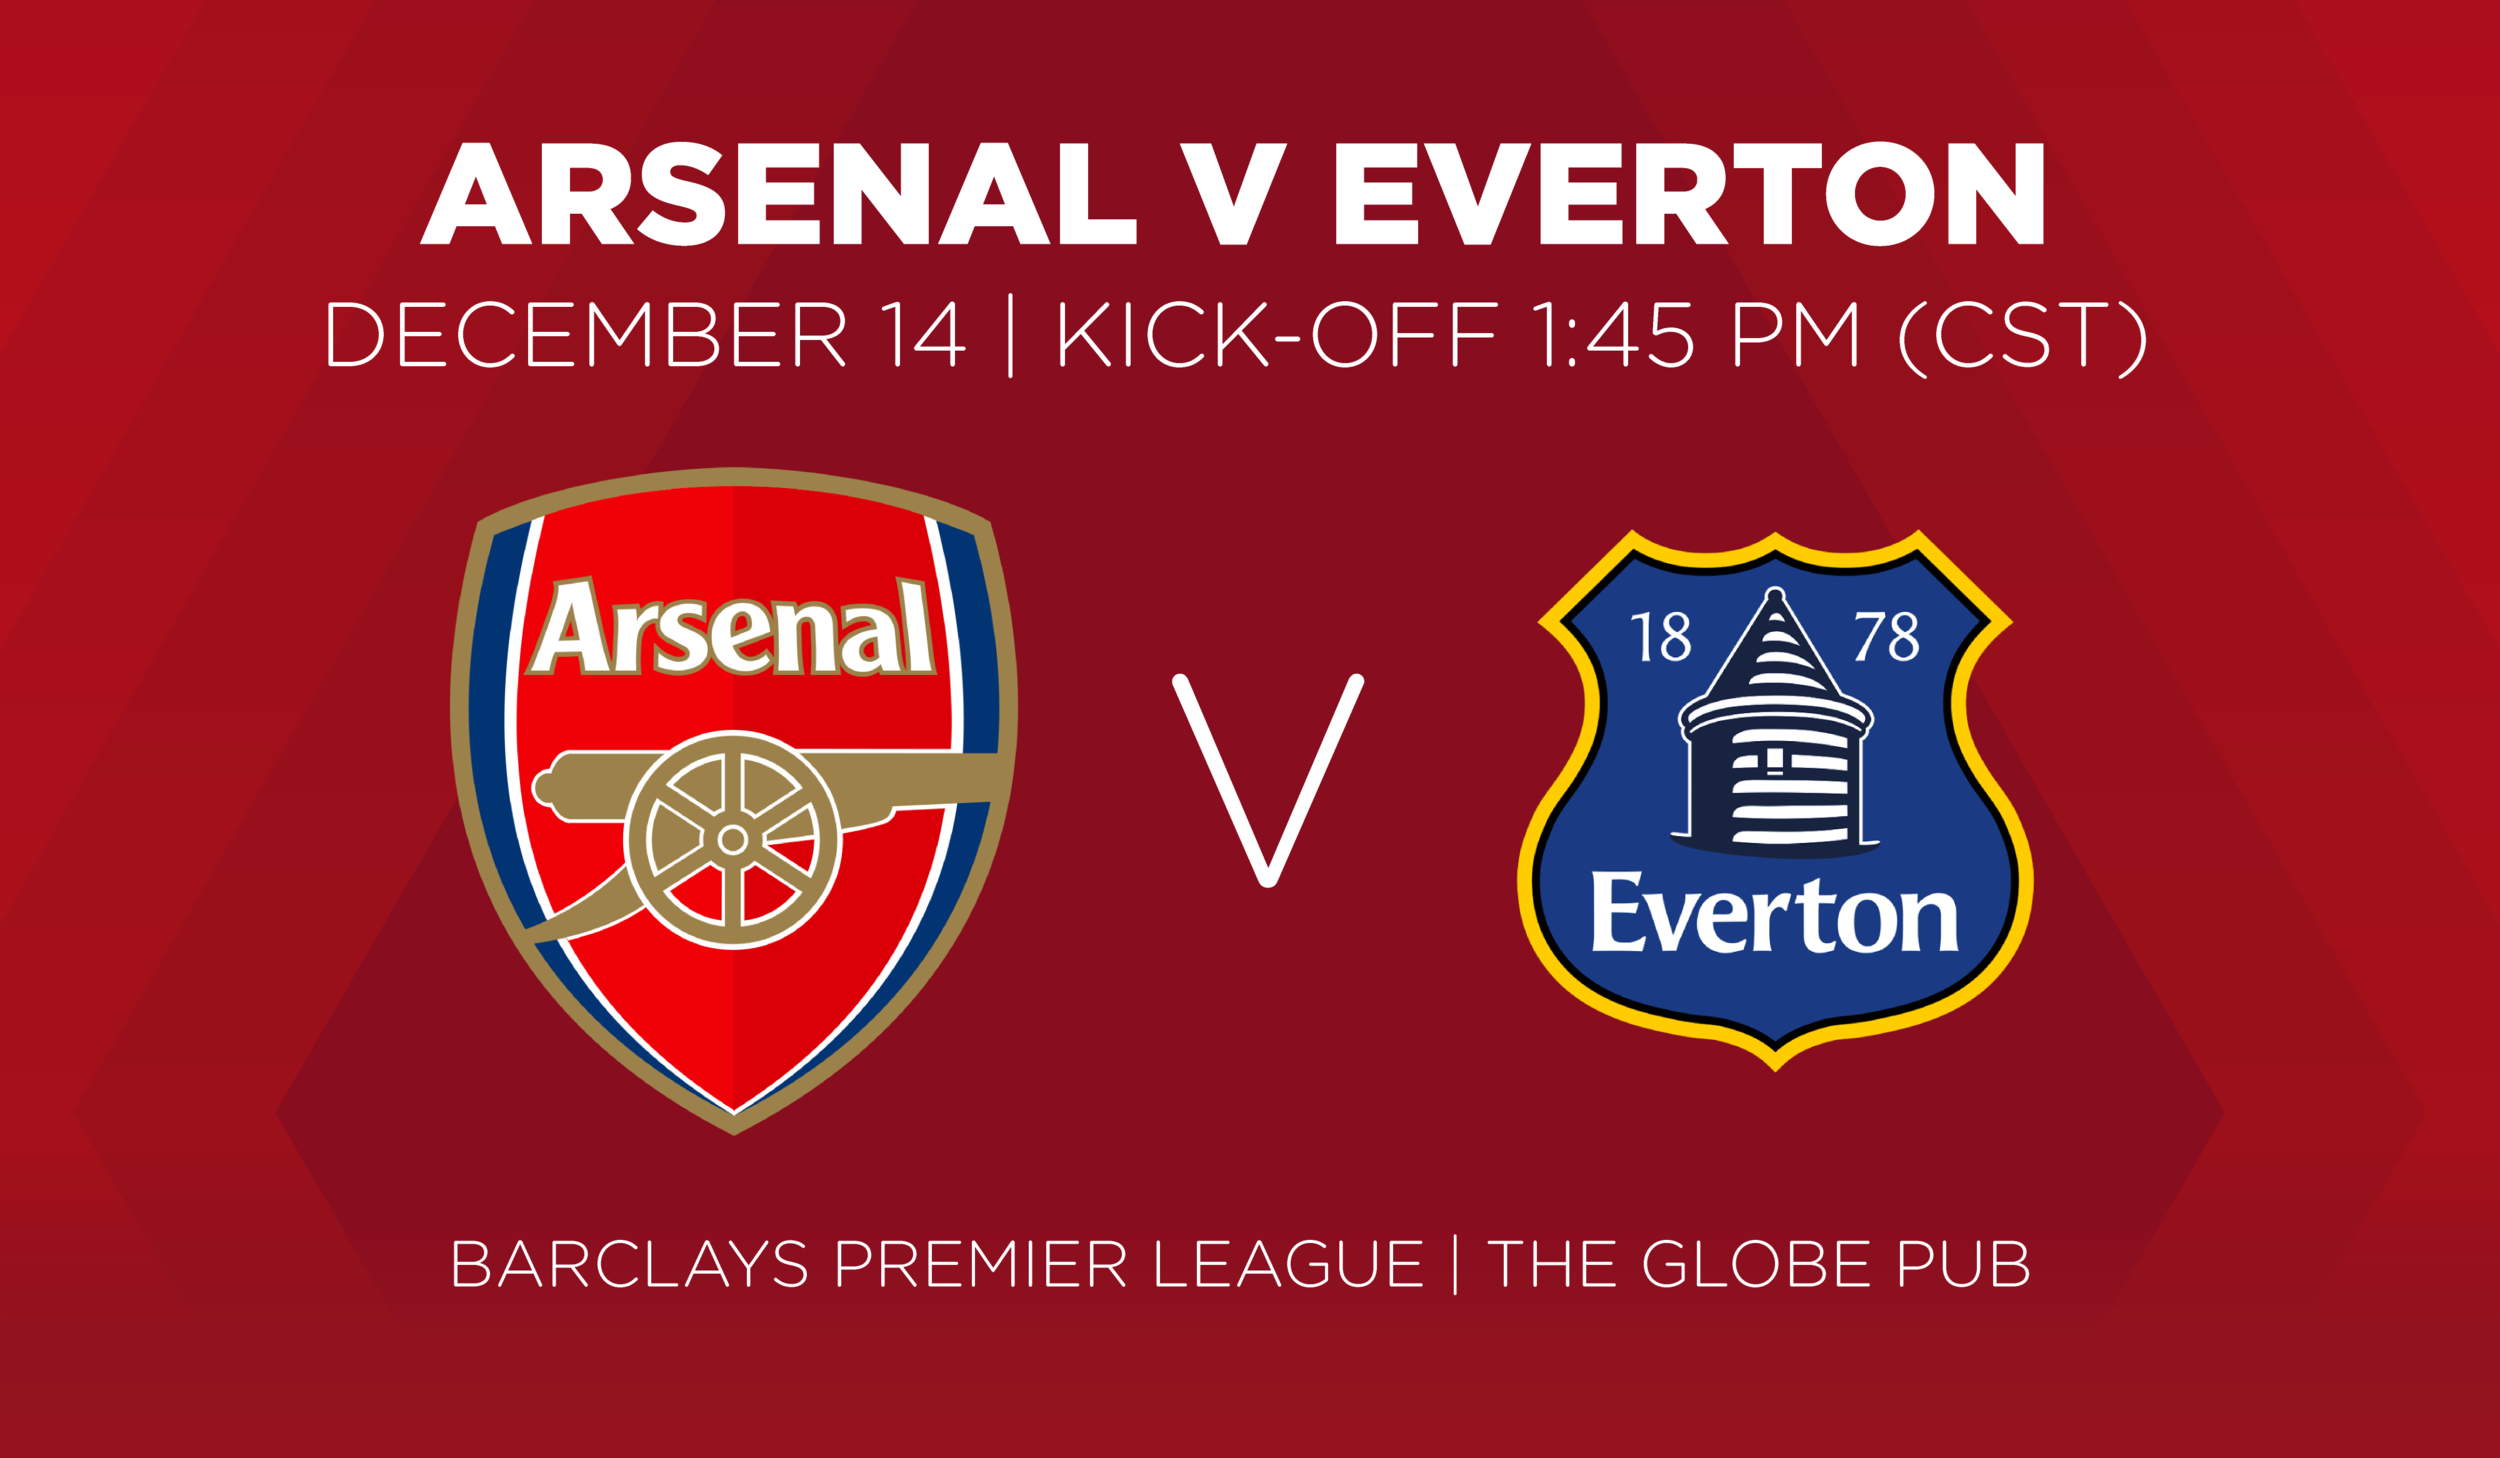 Arsenal V Everton